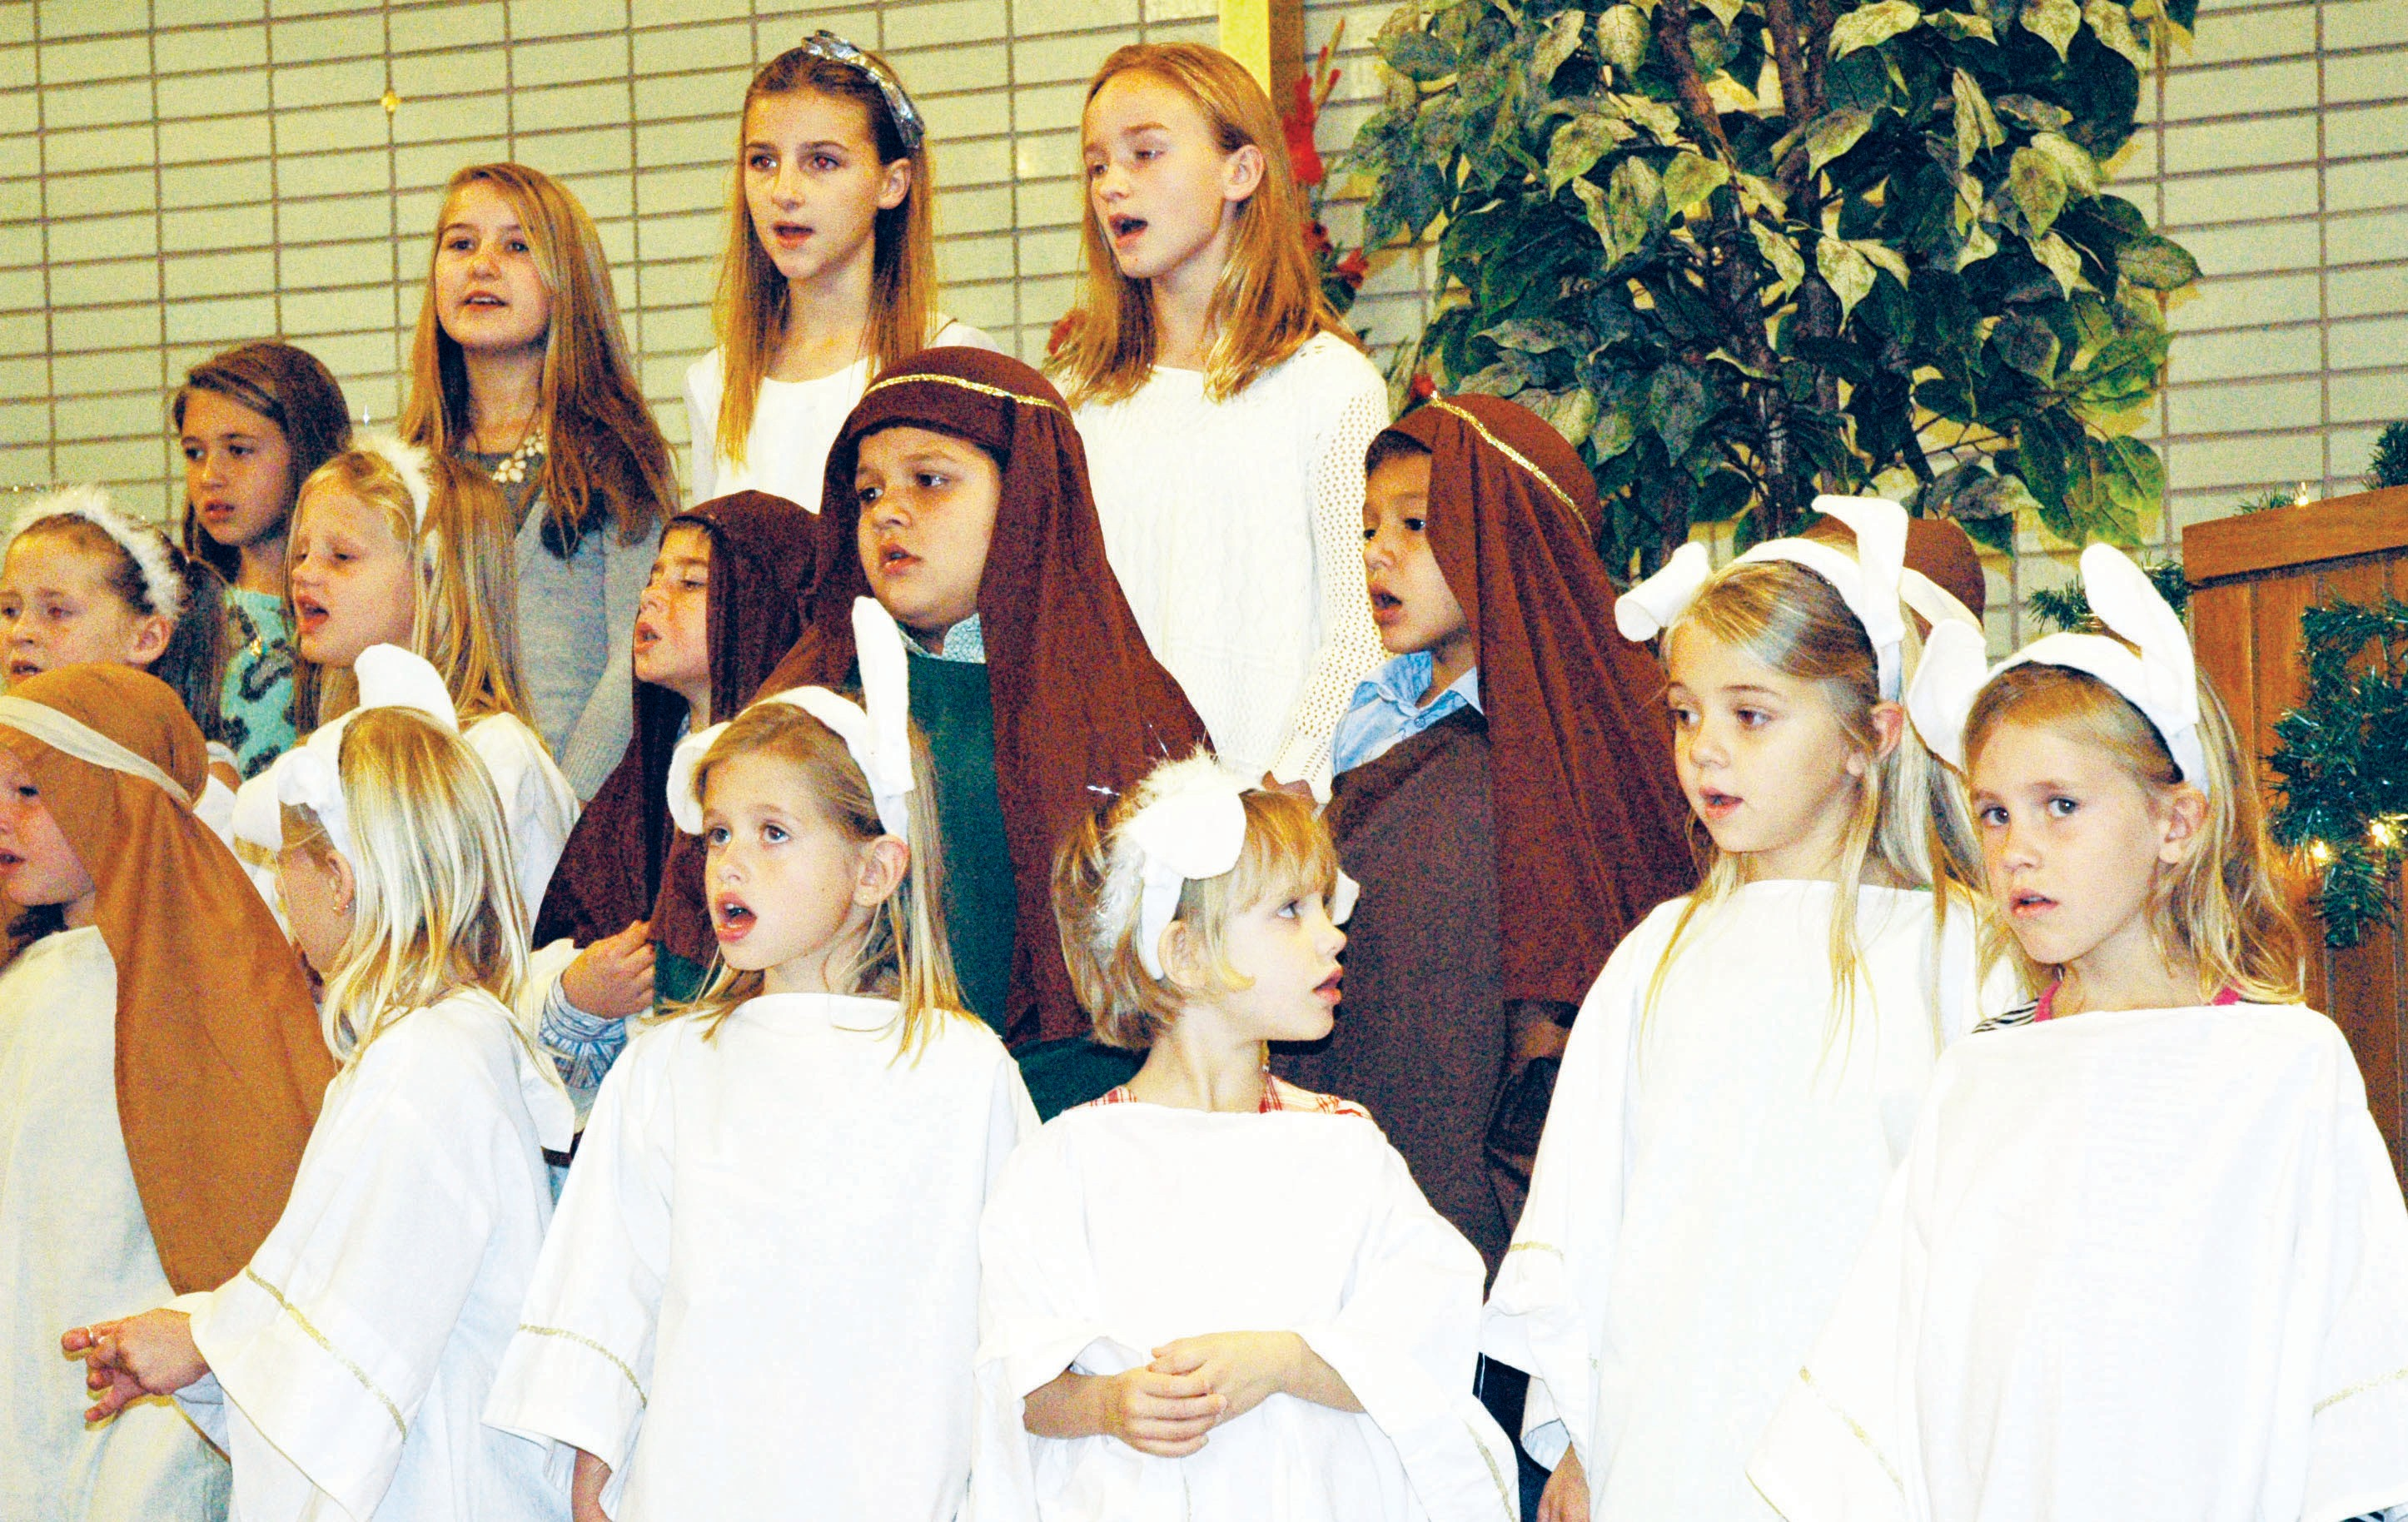 Cast members of First United Methodist Church Christmas play sing the final song. Left to right on the top row are: Brooke Rankin, Lauren Trapp, Brandi Barnett and Kinley Graf. Middle row: Natalie Read, Katie David, Koel Campbell, Evan Guajardo and Marcos Guajardo. Bottom row: Drew David, Sara Clark, Presley Moos, Ella David, Preslie Miller, Ryan Brymer and Kael Campbell. The youth of the church led the congregation on Youth Sunday, December 7.